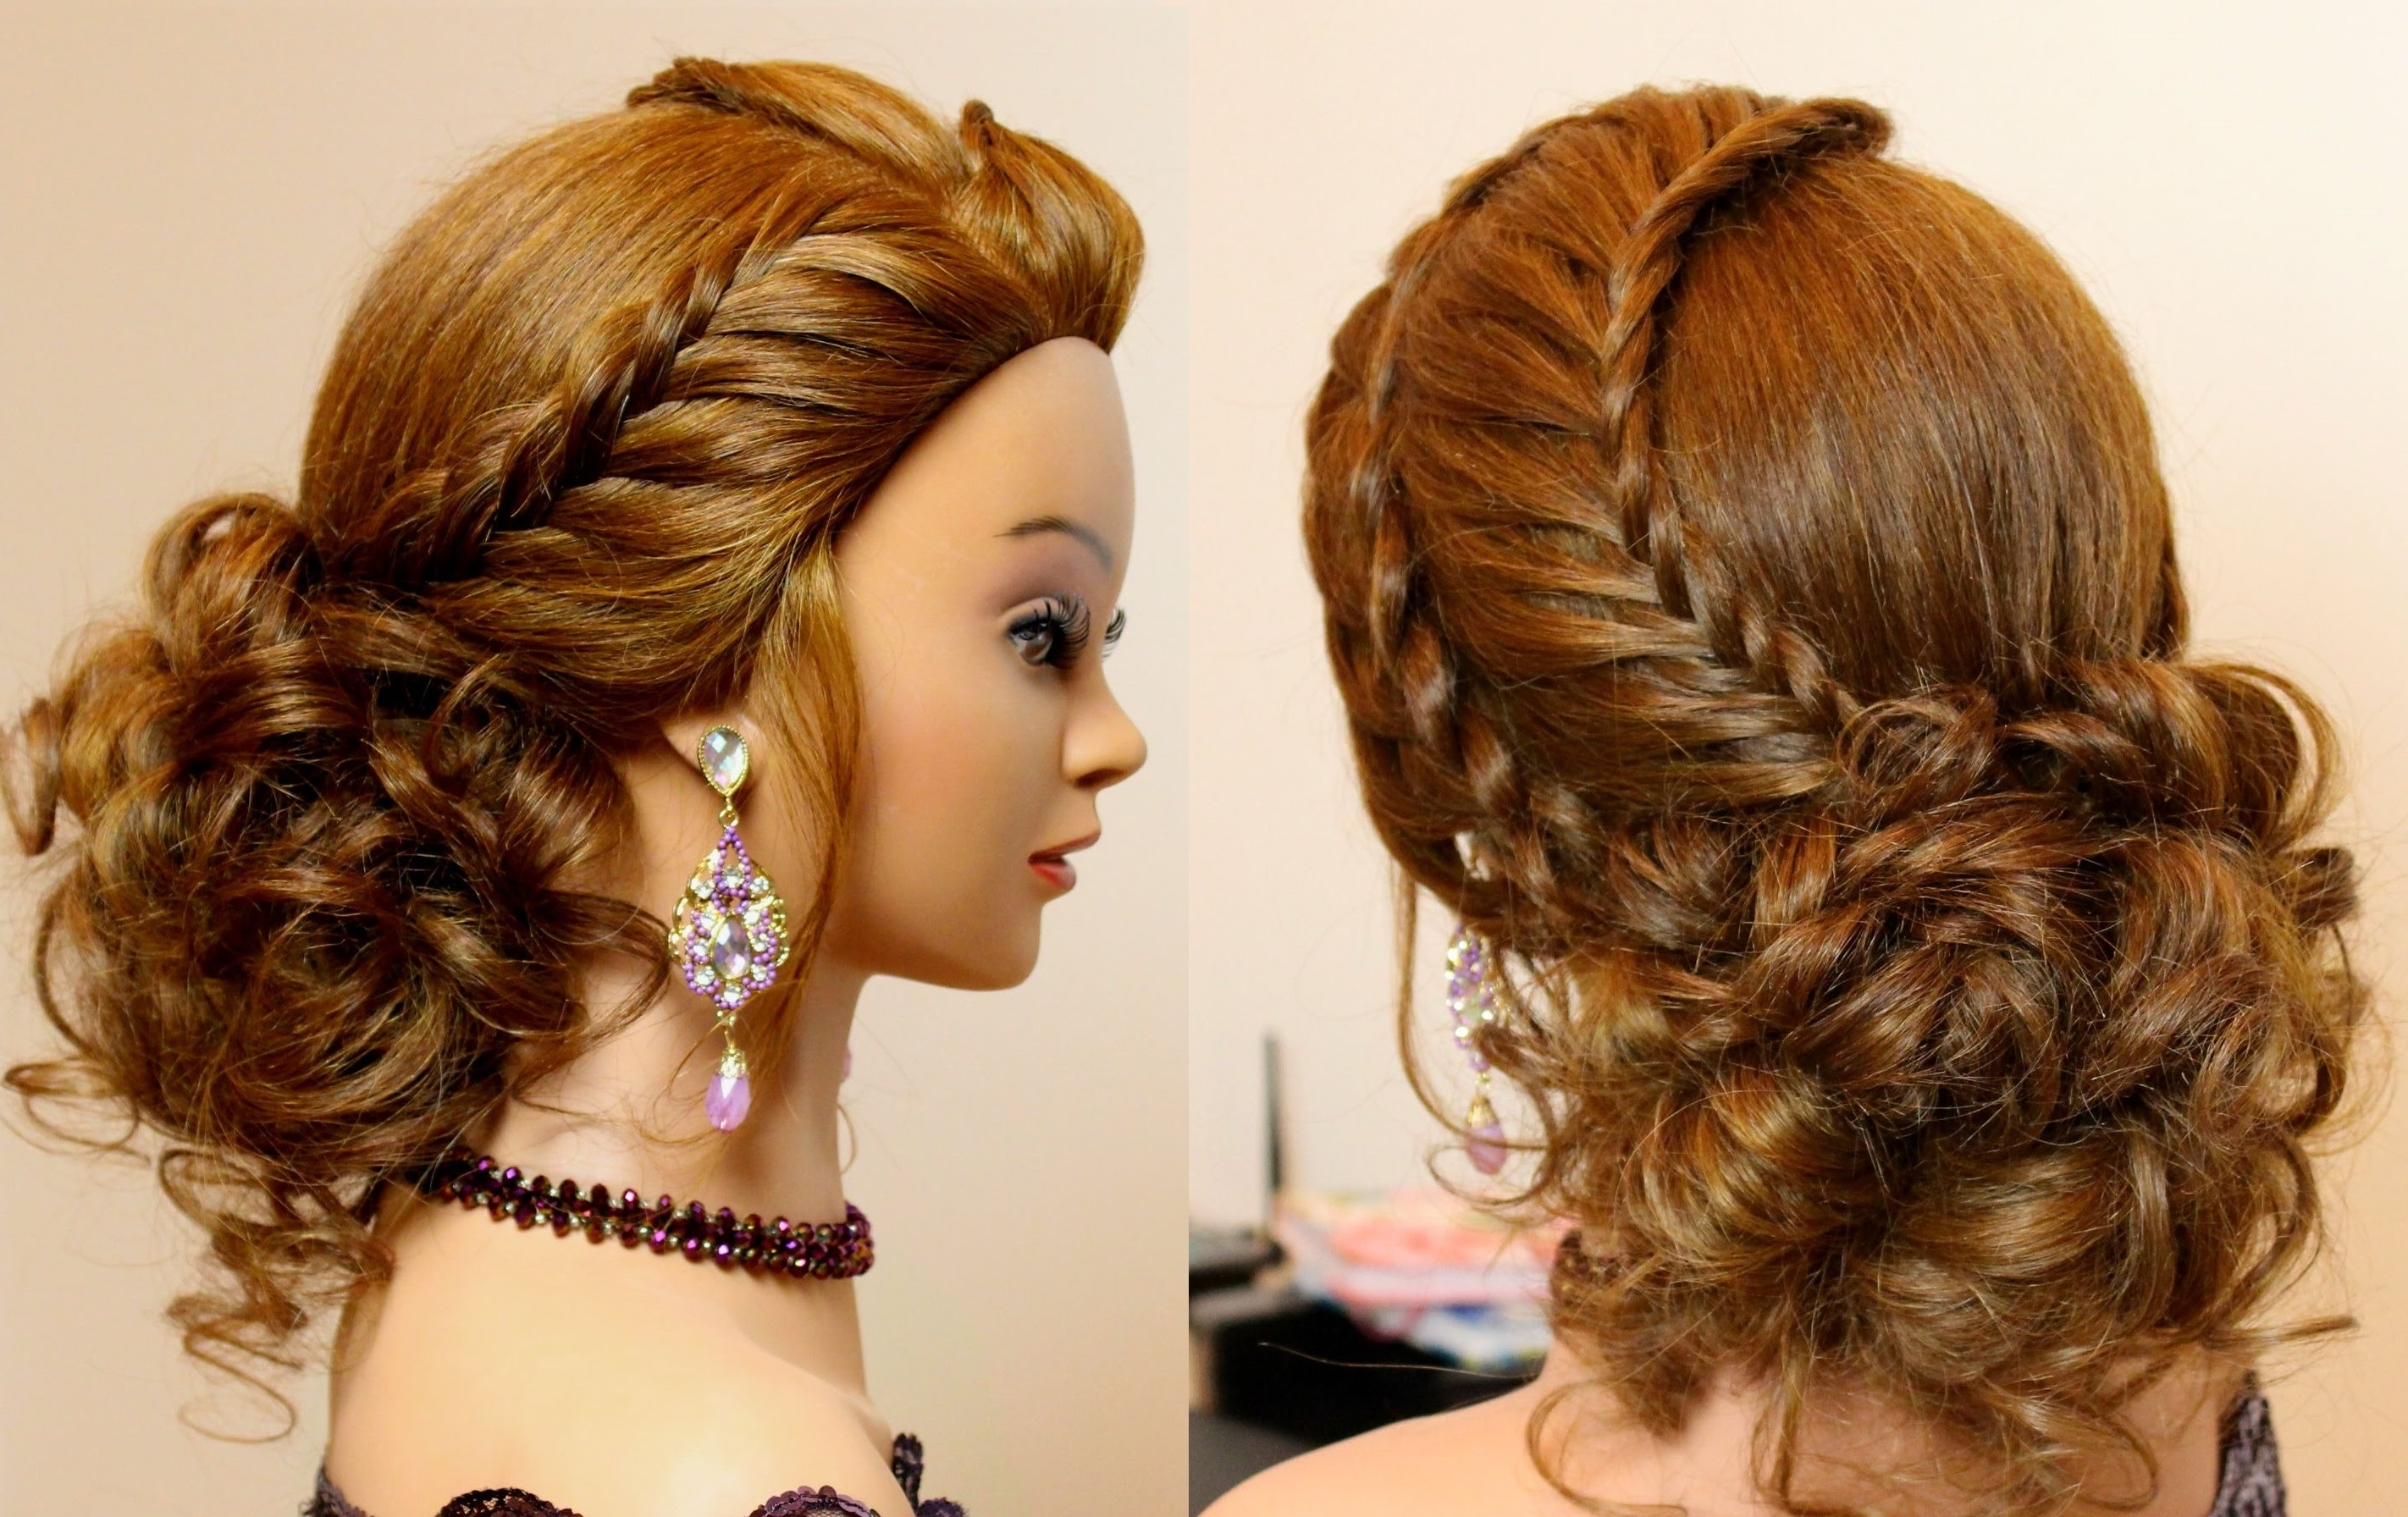 Hairstyle For Long Hair Tutorial Cute Prom Updo With Braids Youtube Throughout Fancy Updo Hairstyles For Long Hair (View 6 of 15)